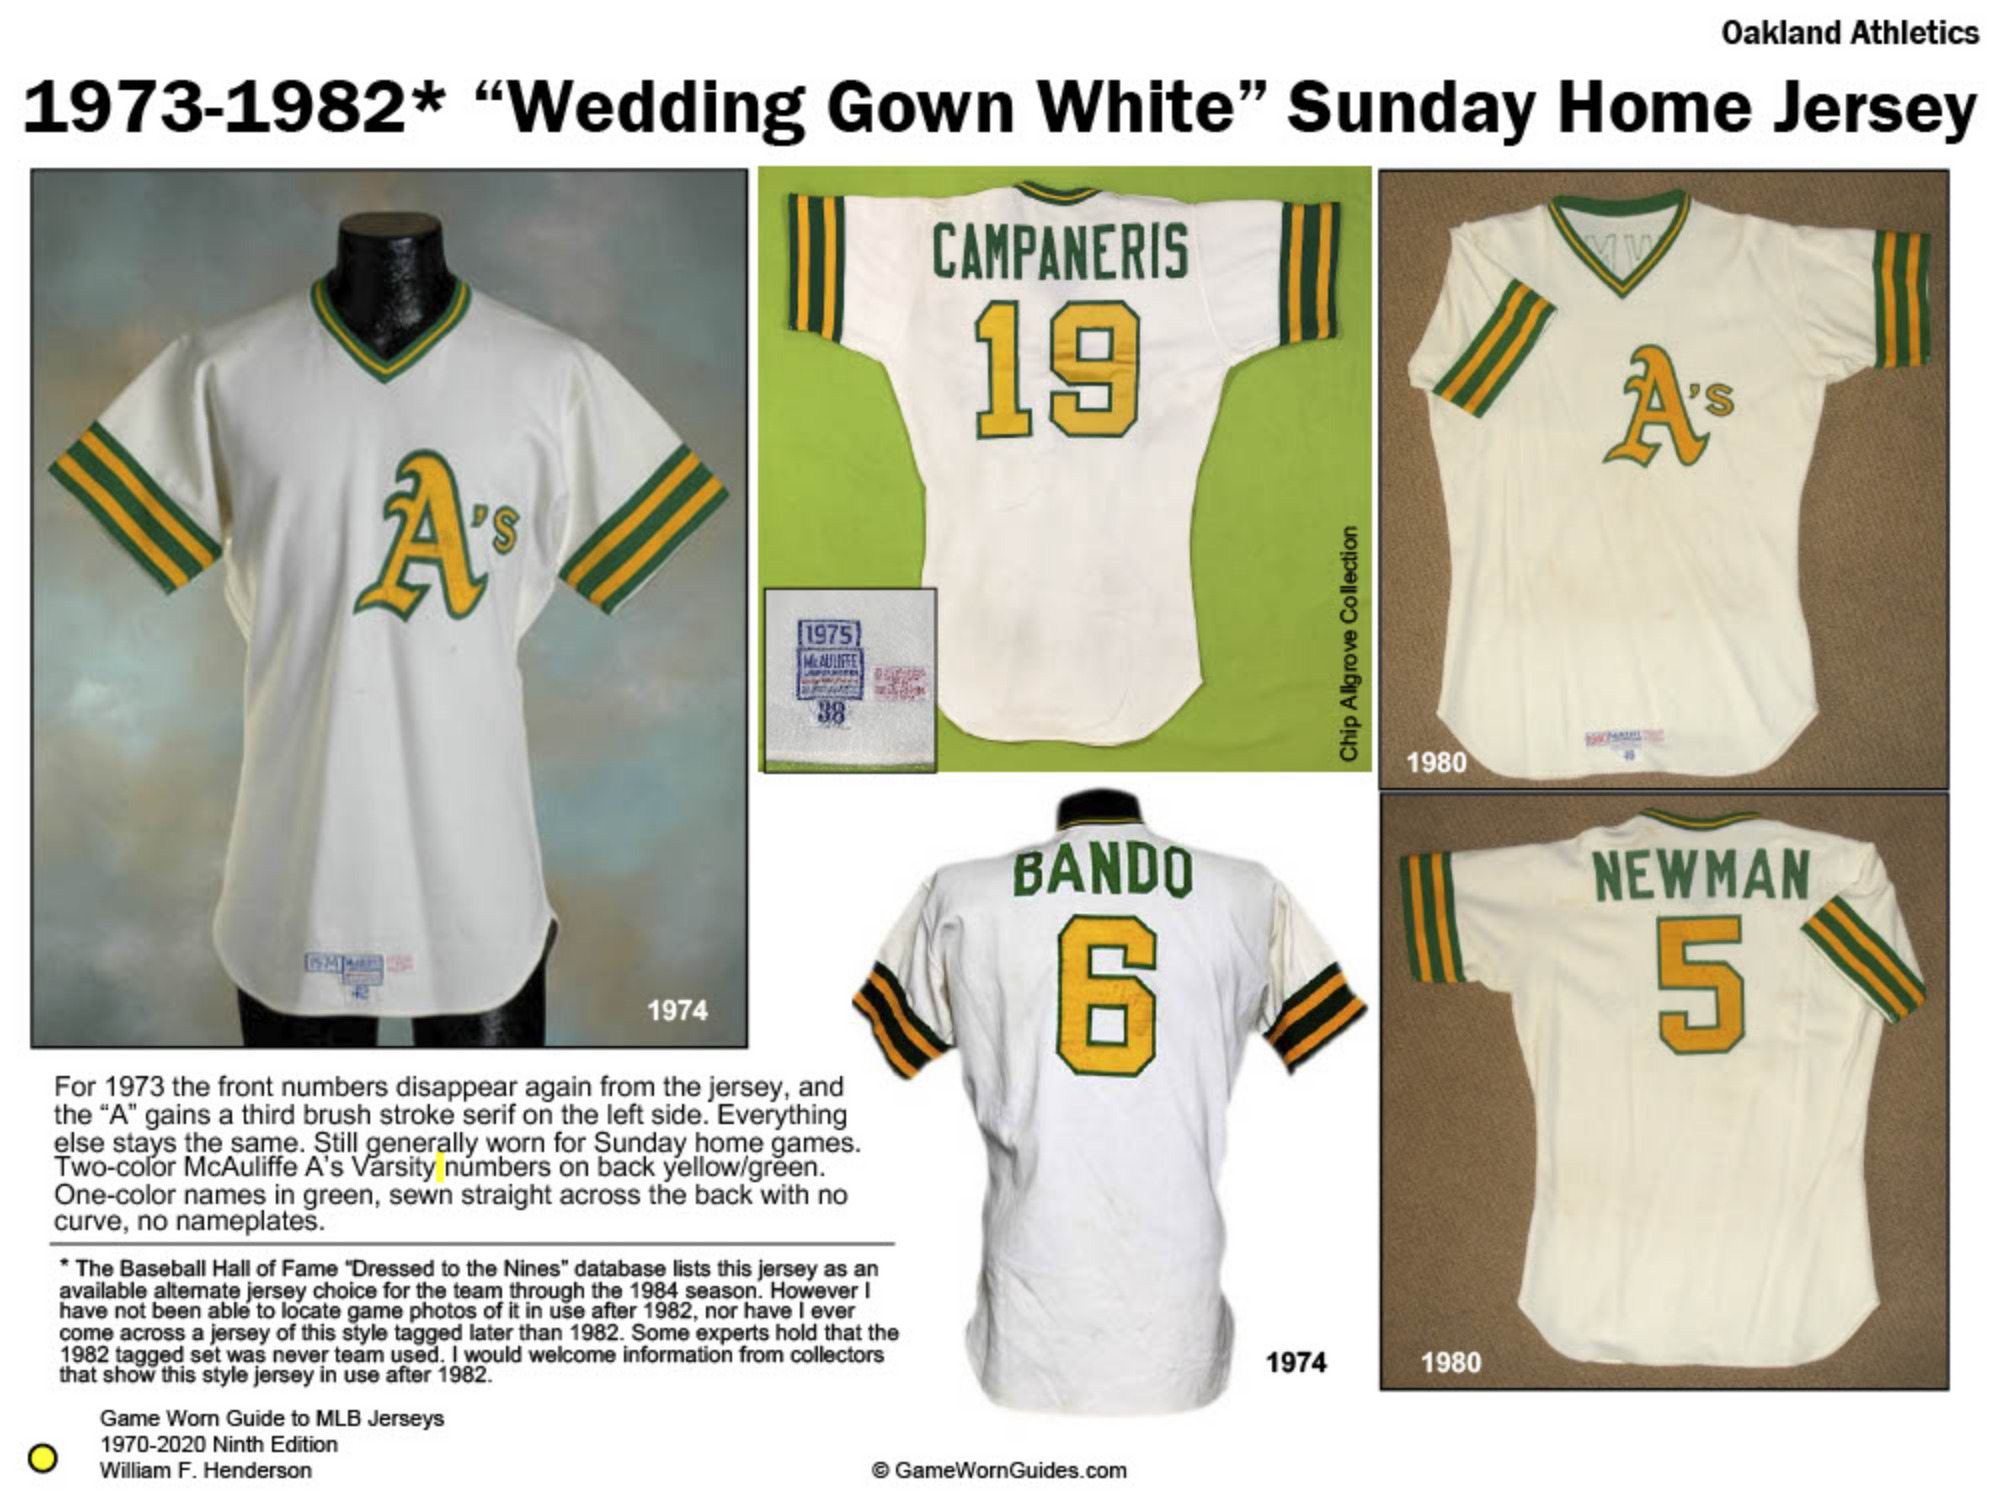 Game Worn Guide to Oakland Athletics Jerseys (1970-2020)